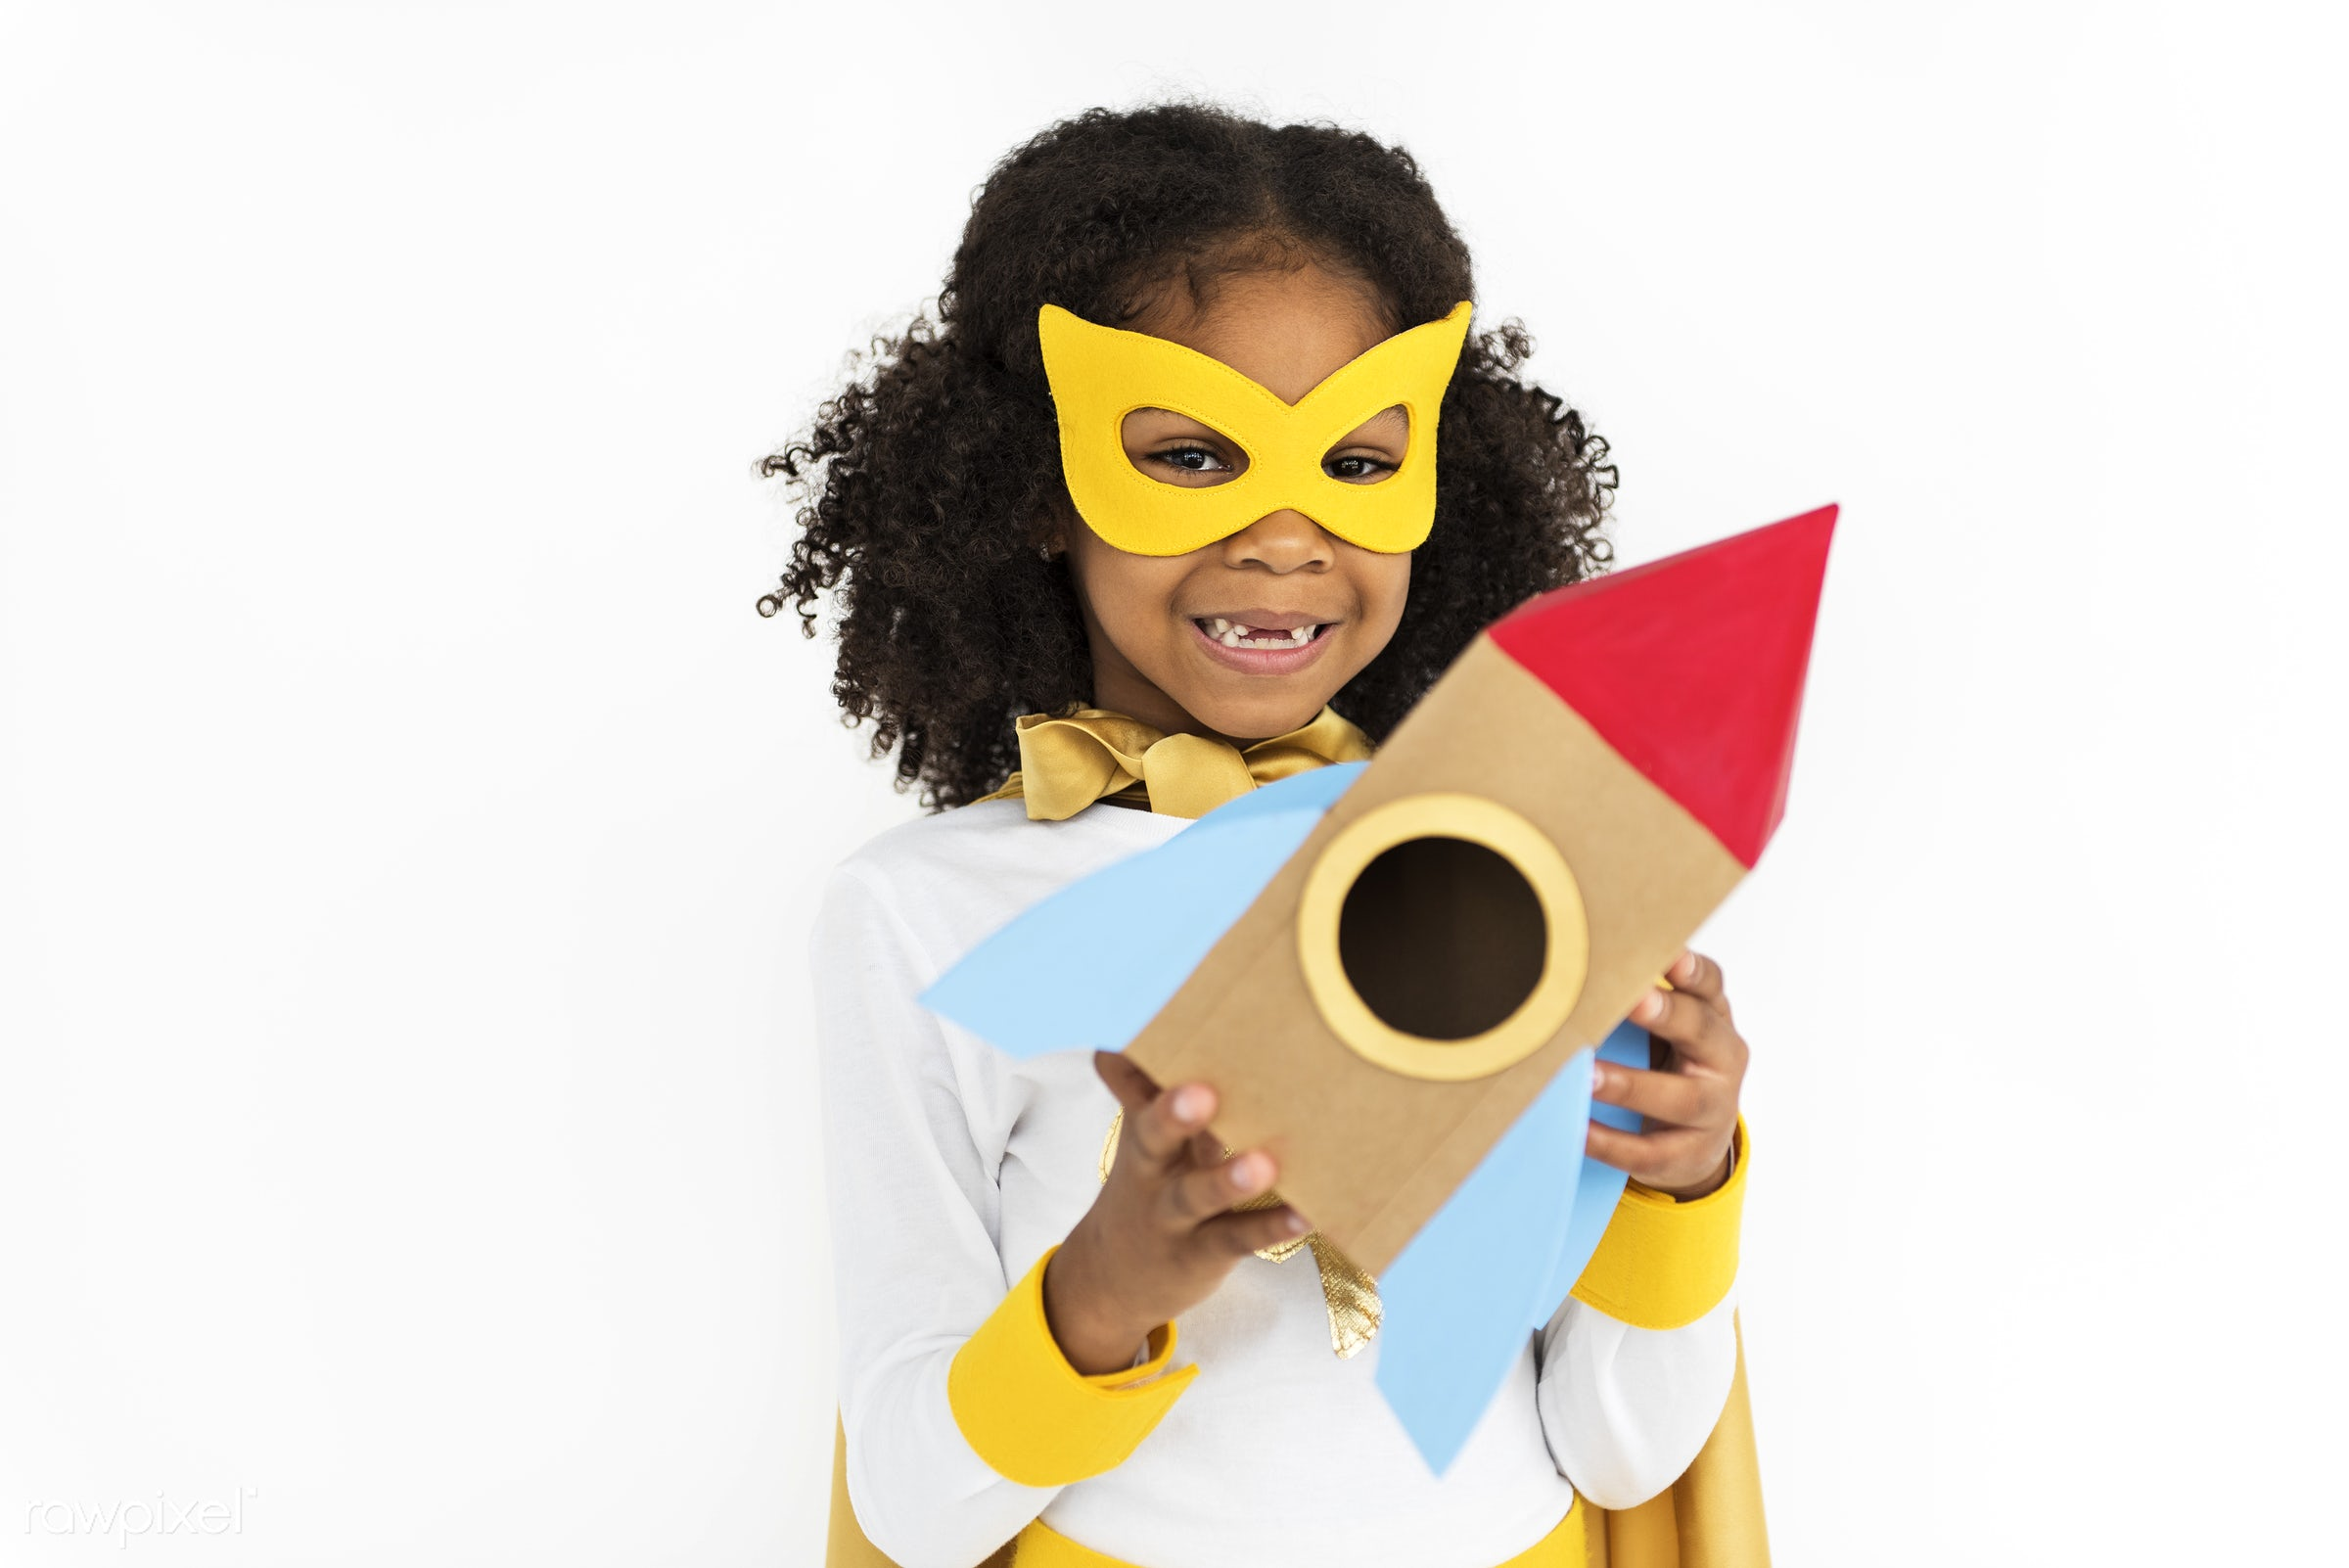 african descent, alone, black, cheerful, child, children, costume, girl, isolated, kid, one, playful, smiling, superhero,...